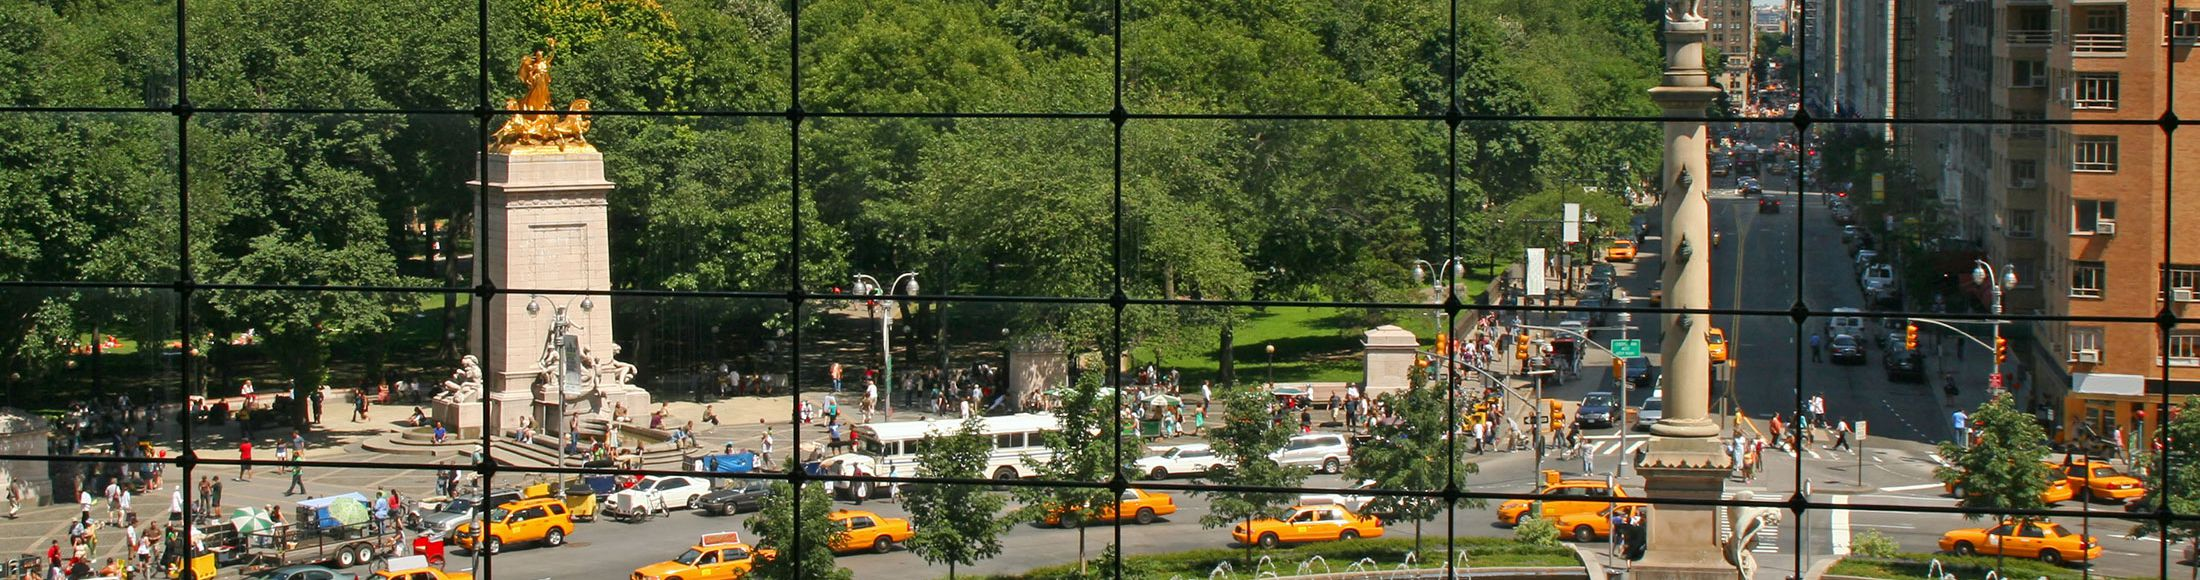 Columbus Circle Then and Now